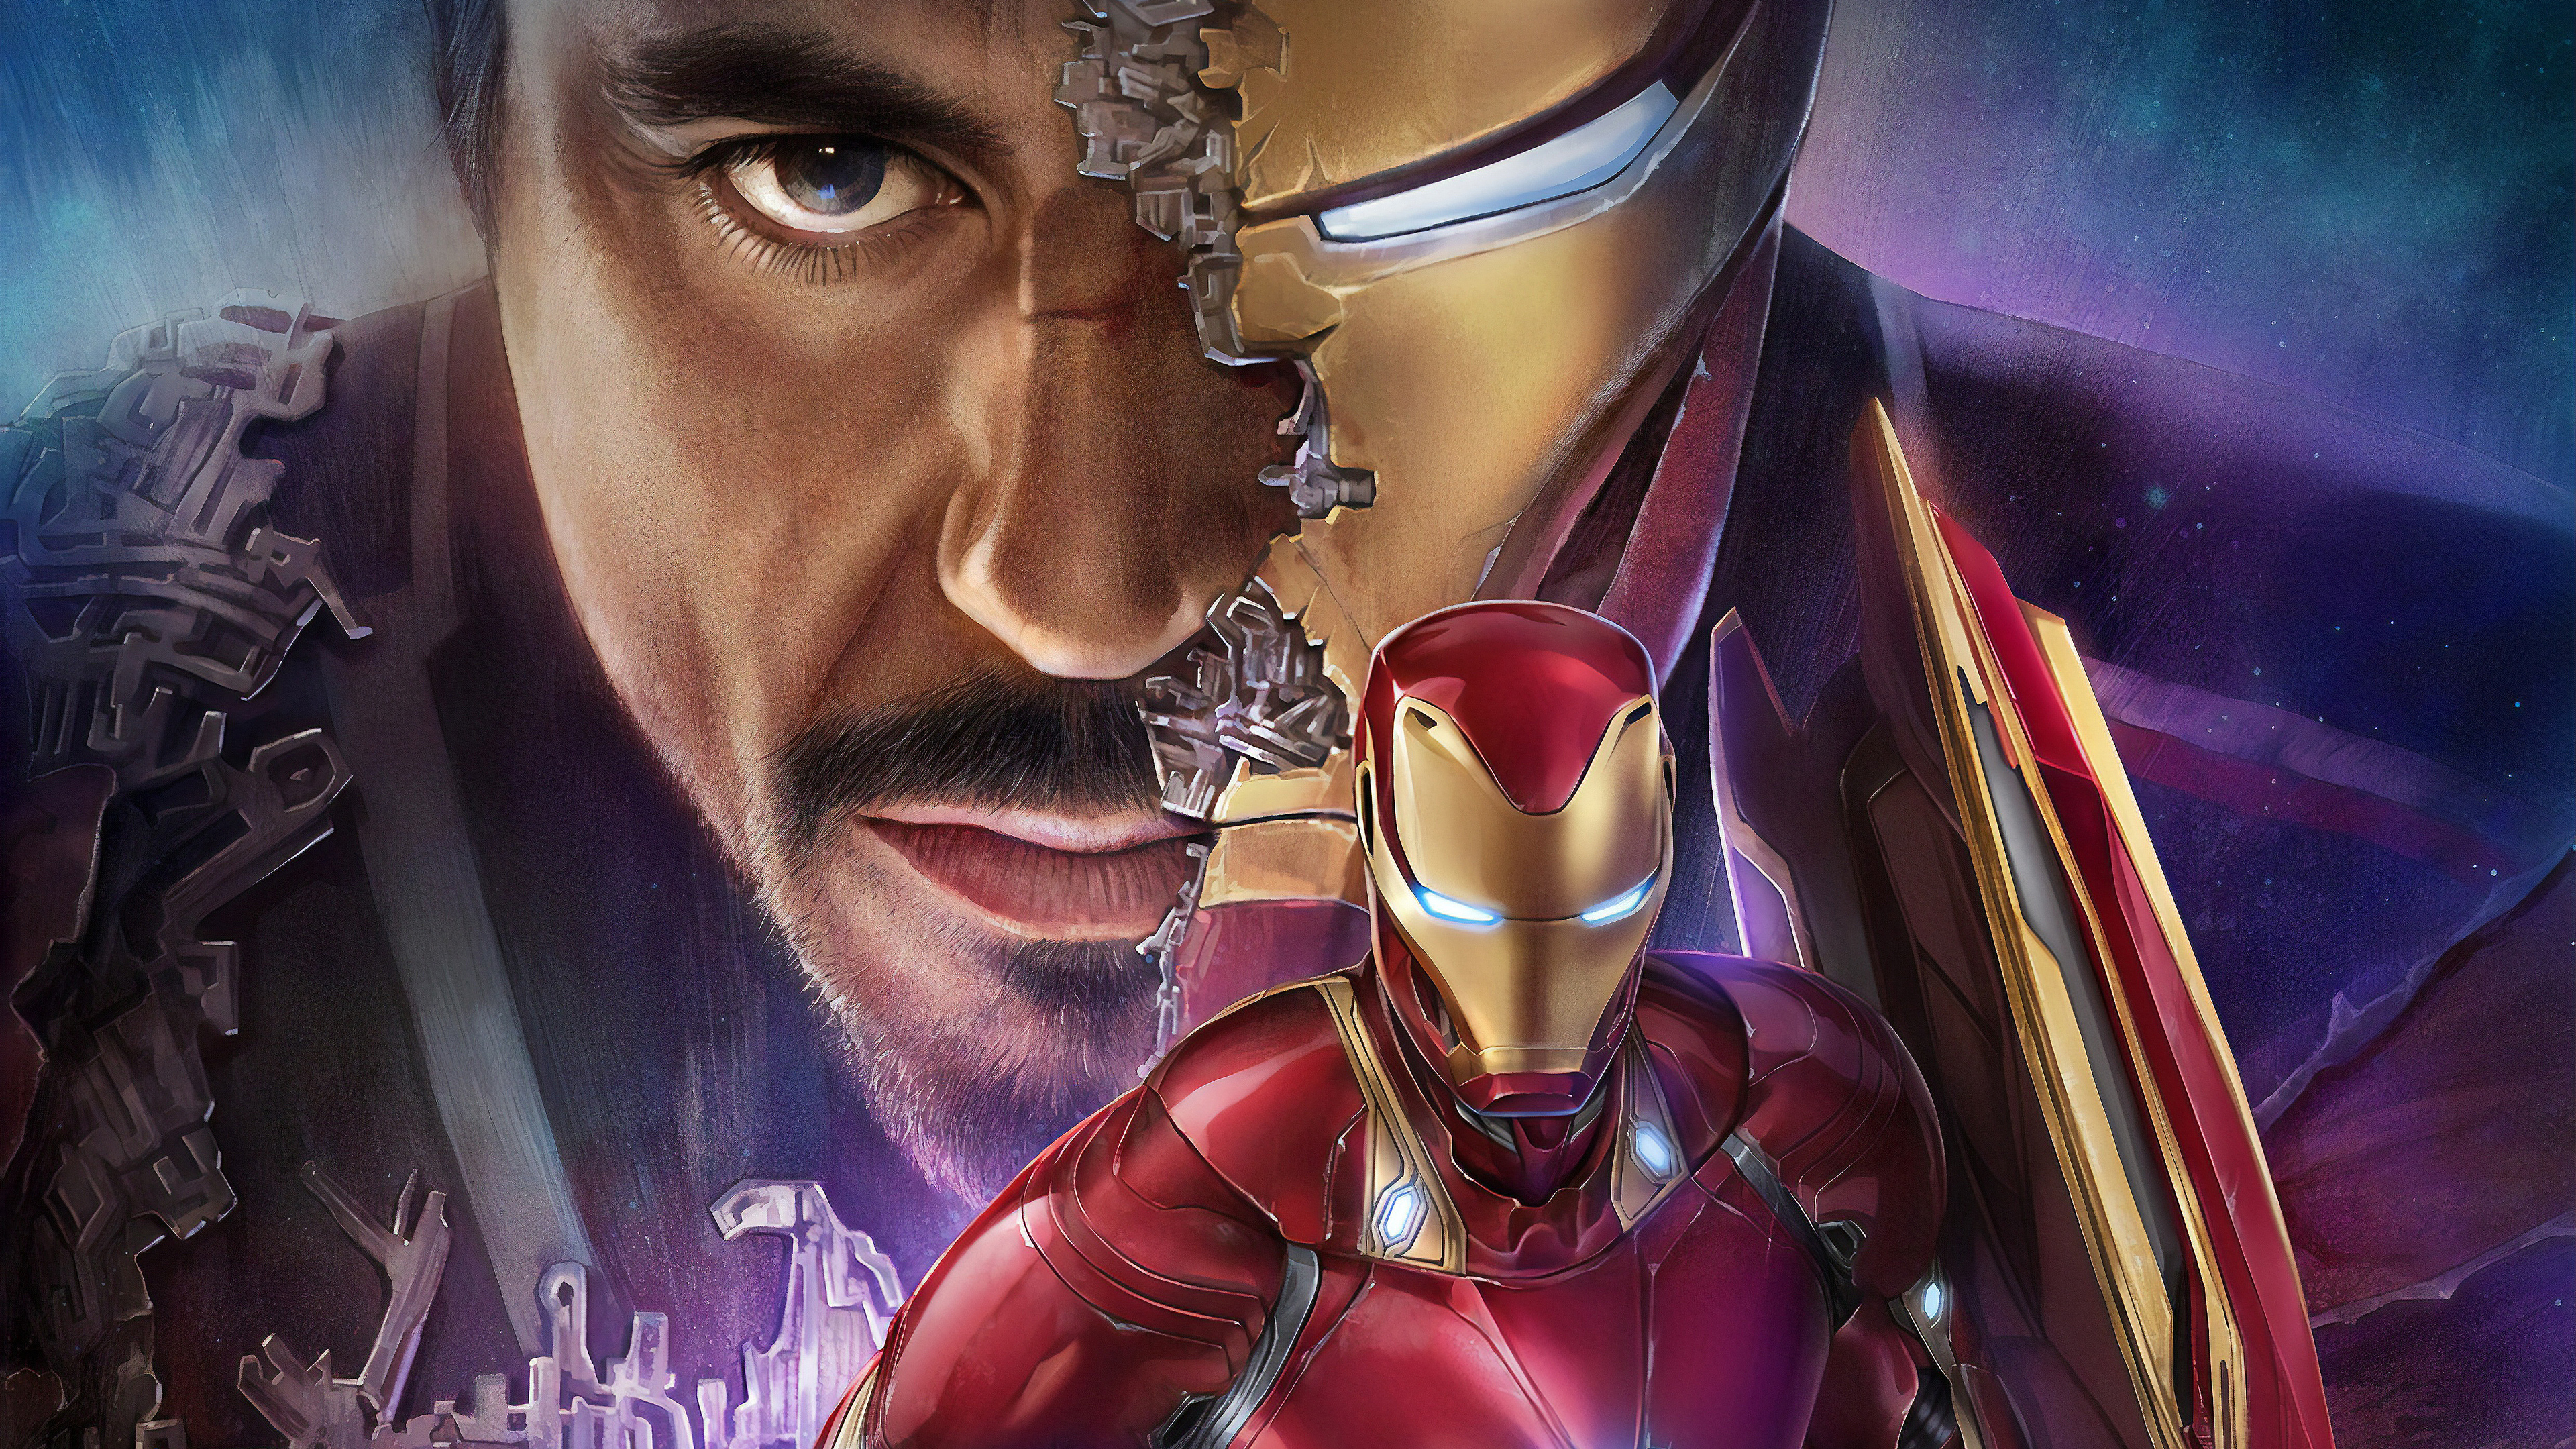 Tony Stark Iron Man 4k, HD Superheroes, 4k Wallpapers ...